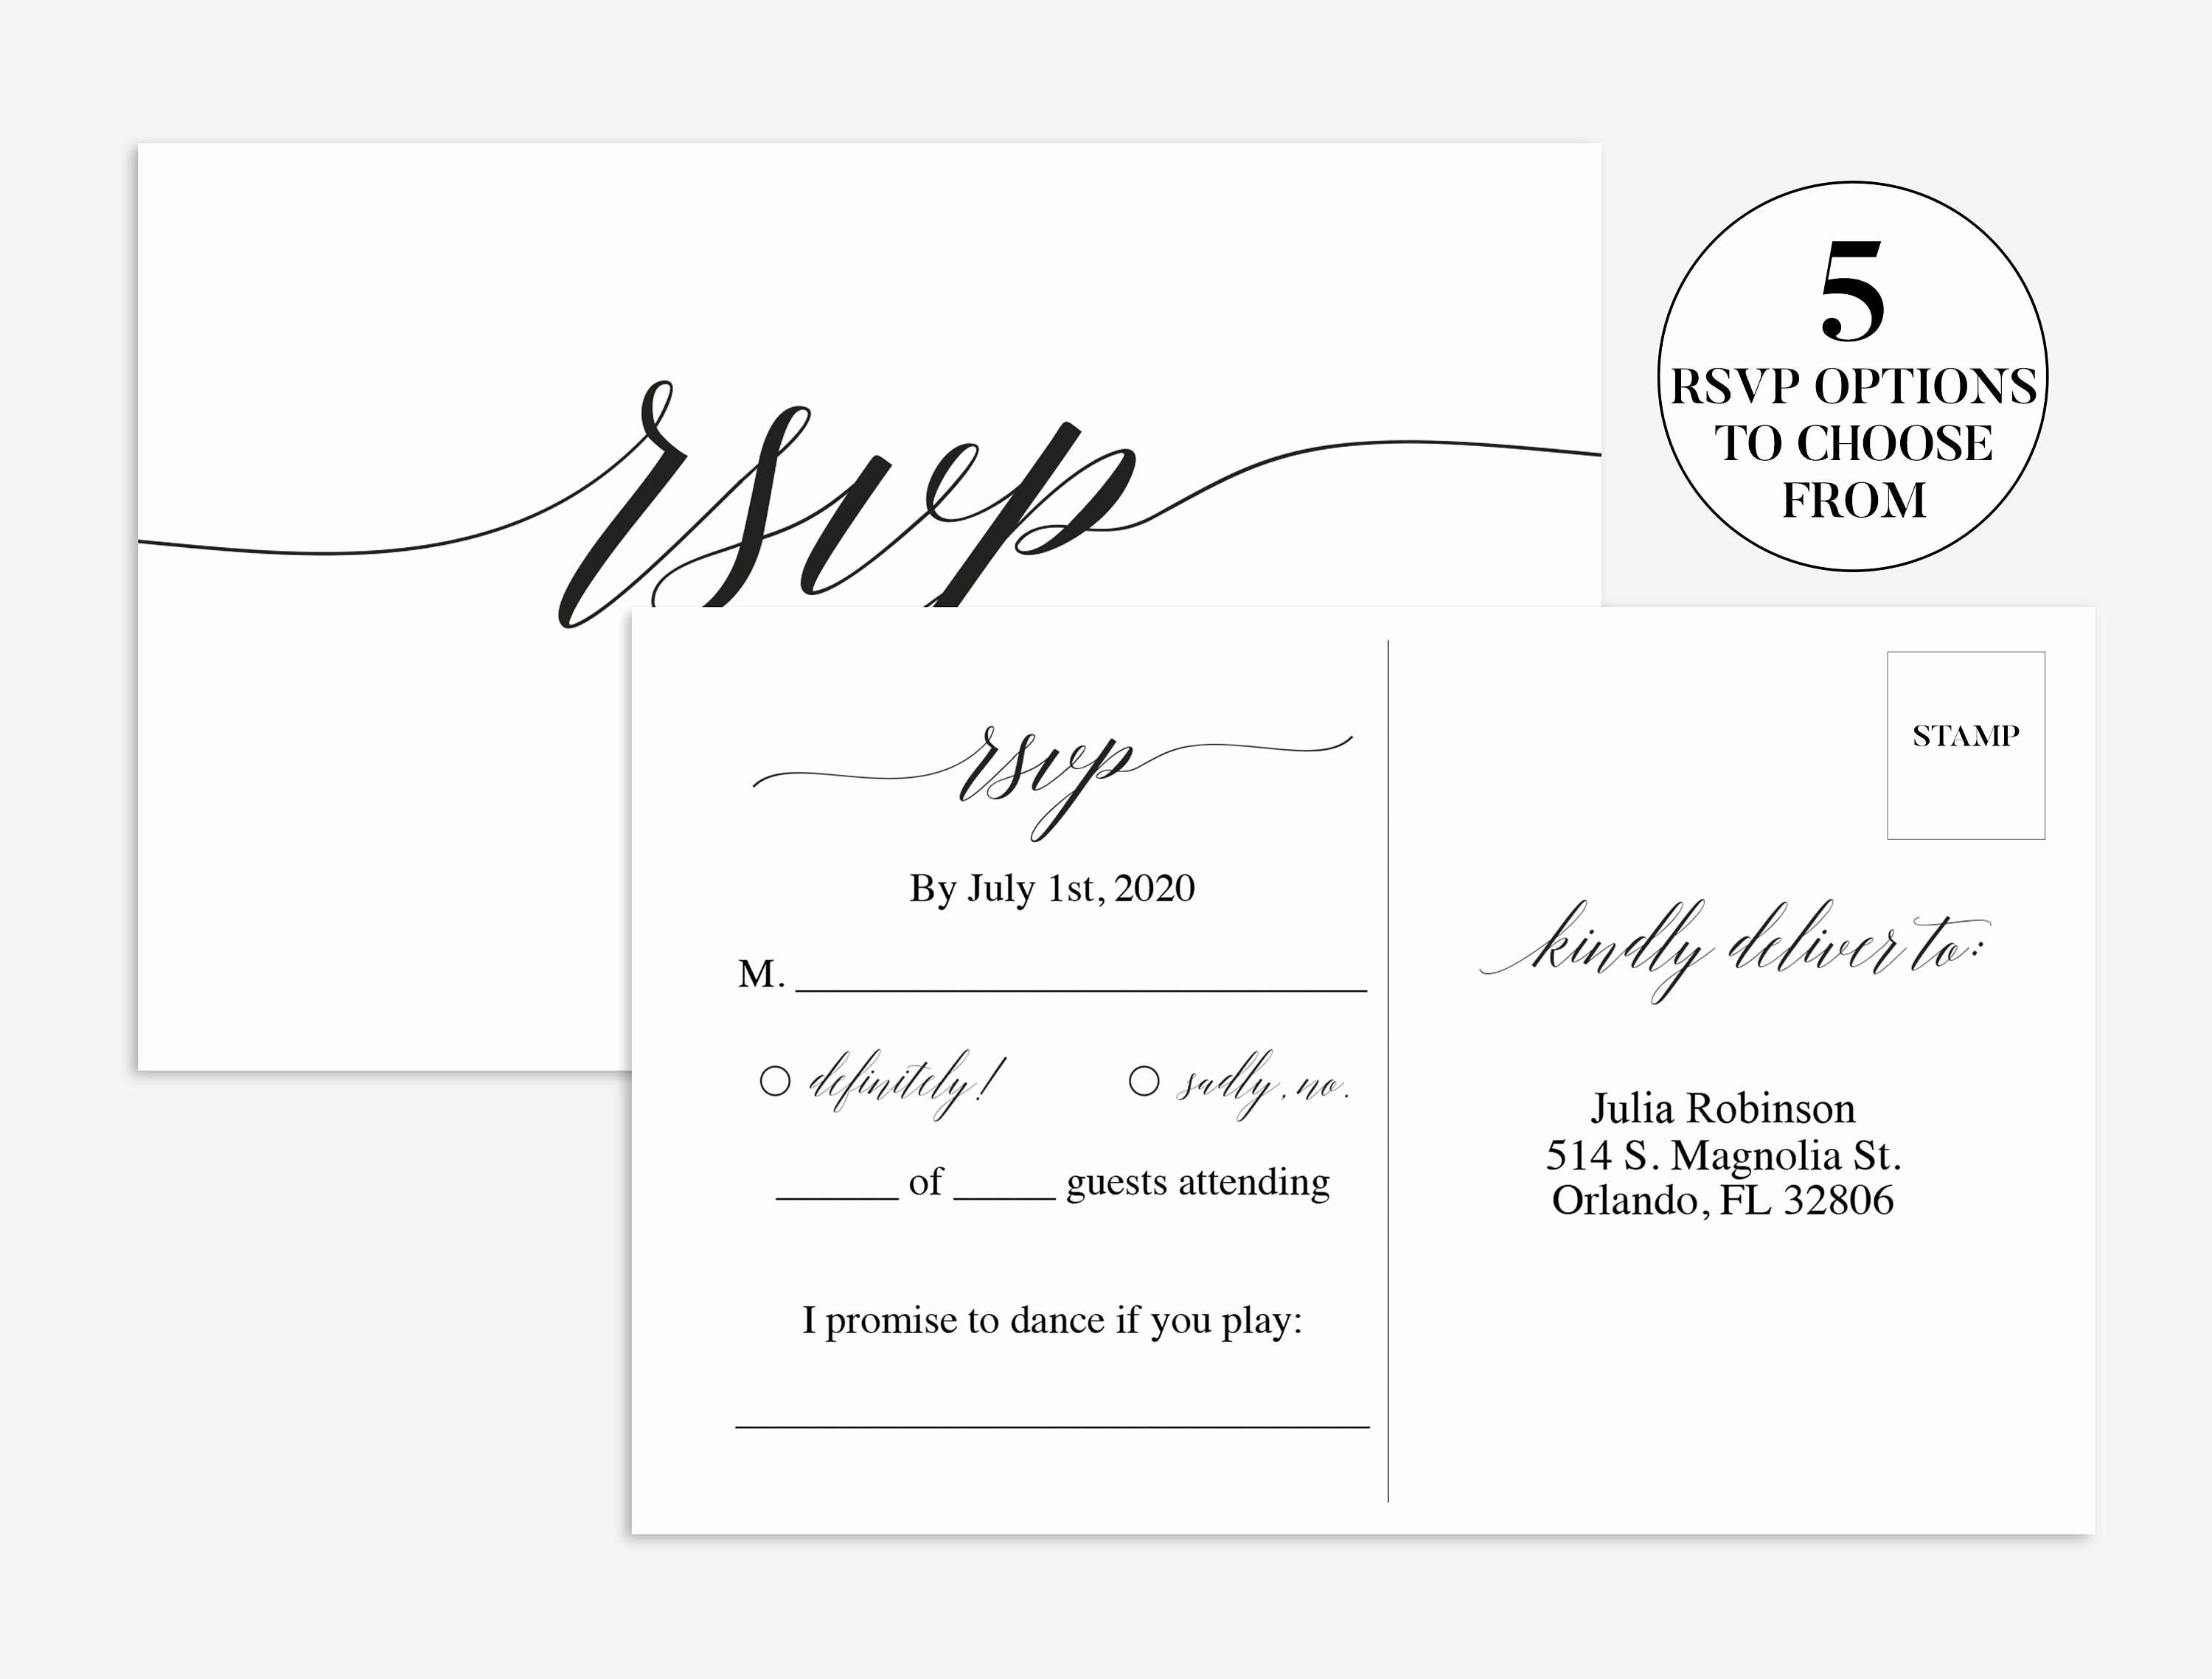 Wedding Rsvp Postcards Template Awesome Wedding Rsvp Card Wedding Rsvp Template